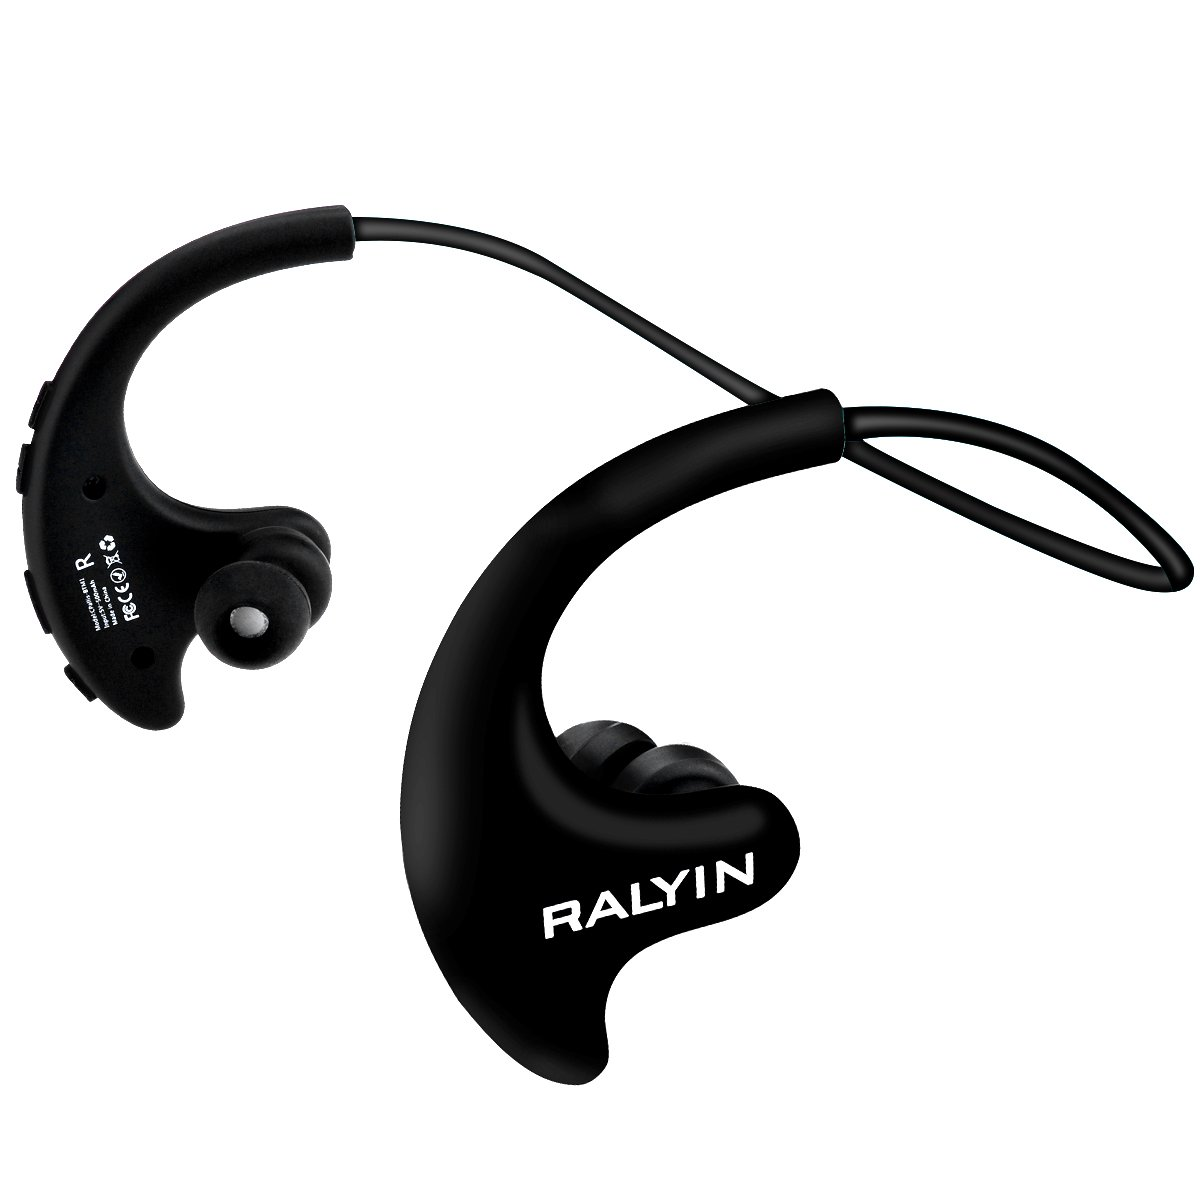 Sports stylish rechargeable mp3 music player headset foto